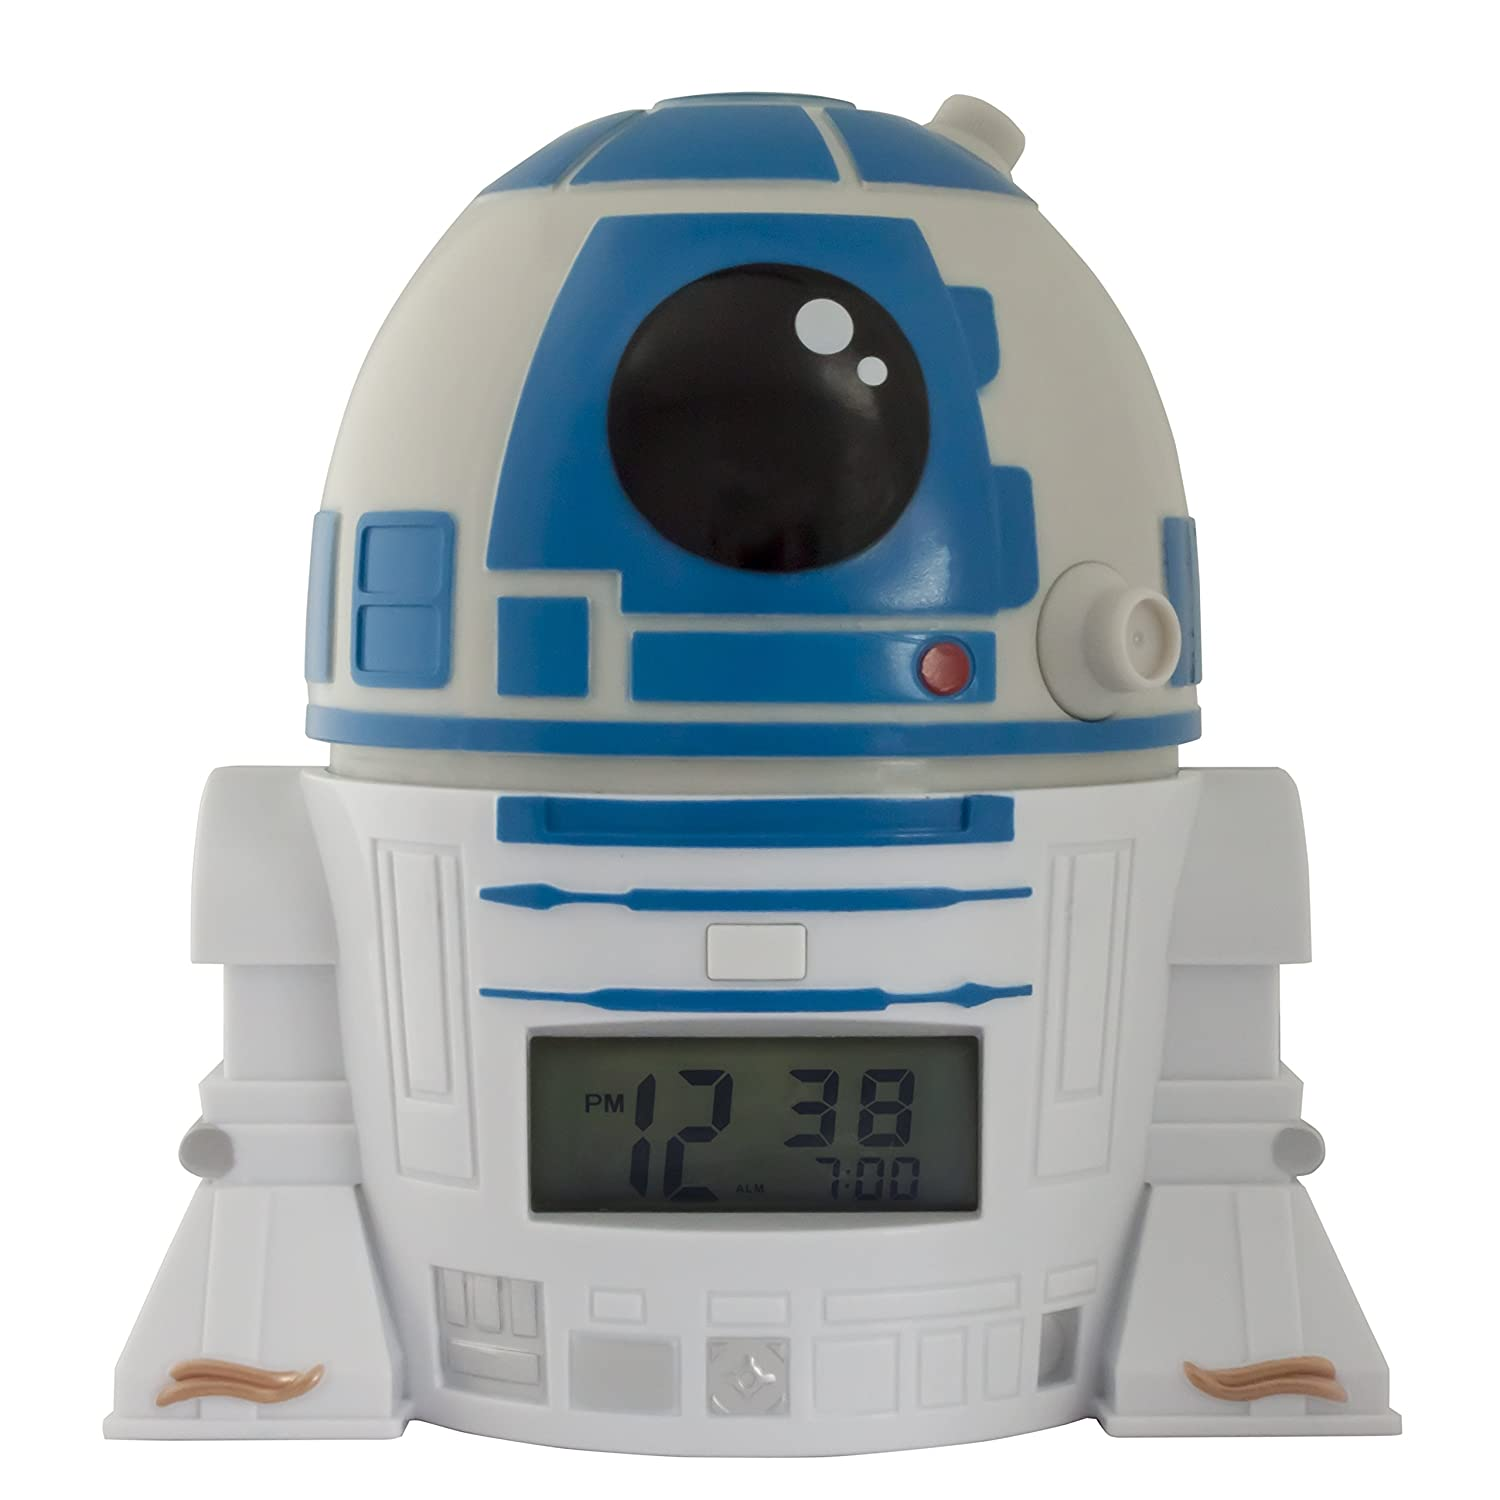 BulbBotz Star Wars 2021401 The Last Jedi R2D2 Kids Night Light Alarm Clock with Characterised Sound | blue/white| plastic | 5.5 inches tall | LCD display | boy girl | official Accessory Consumer Accessories